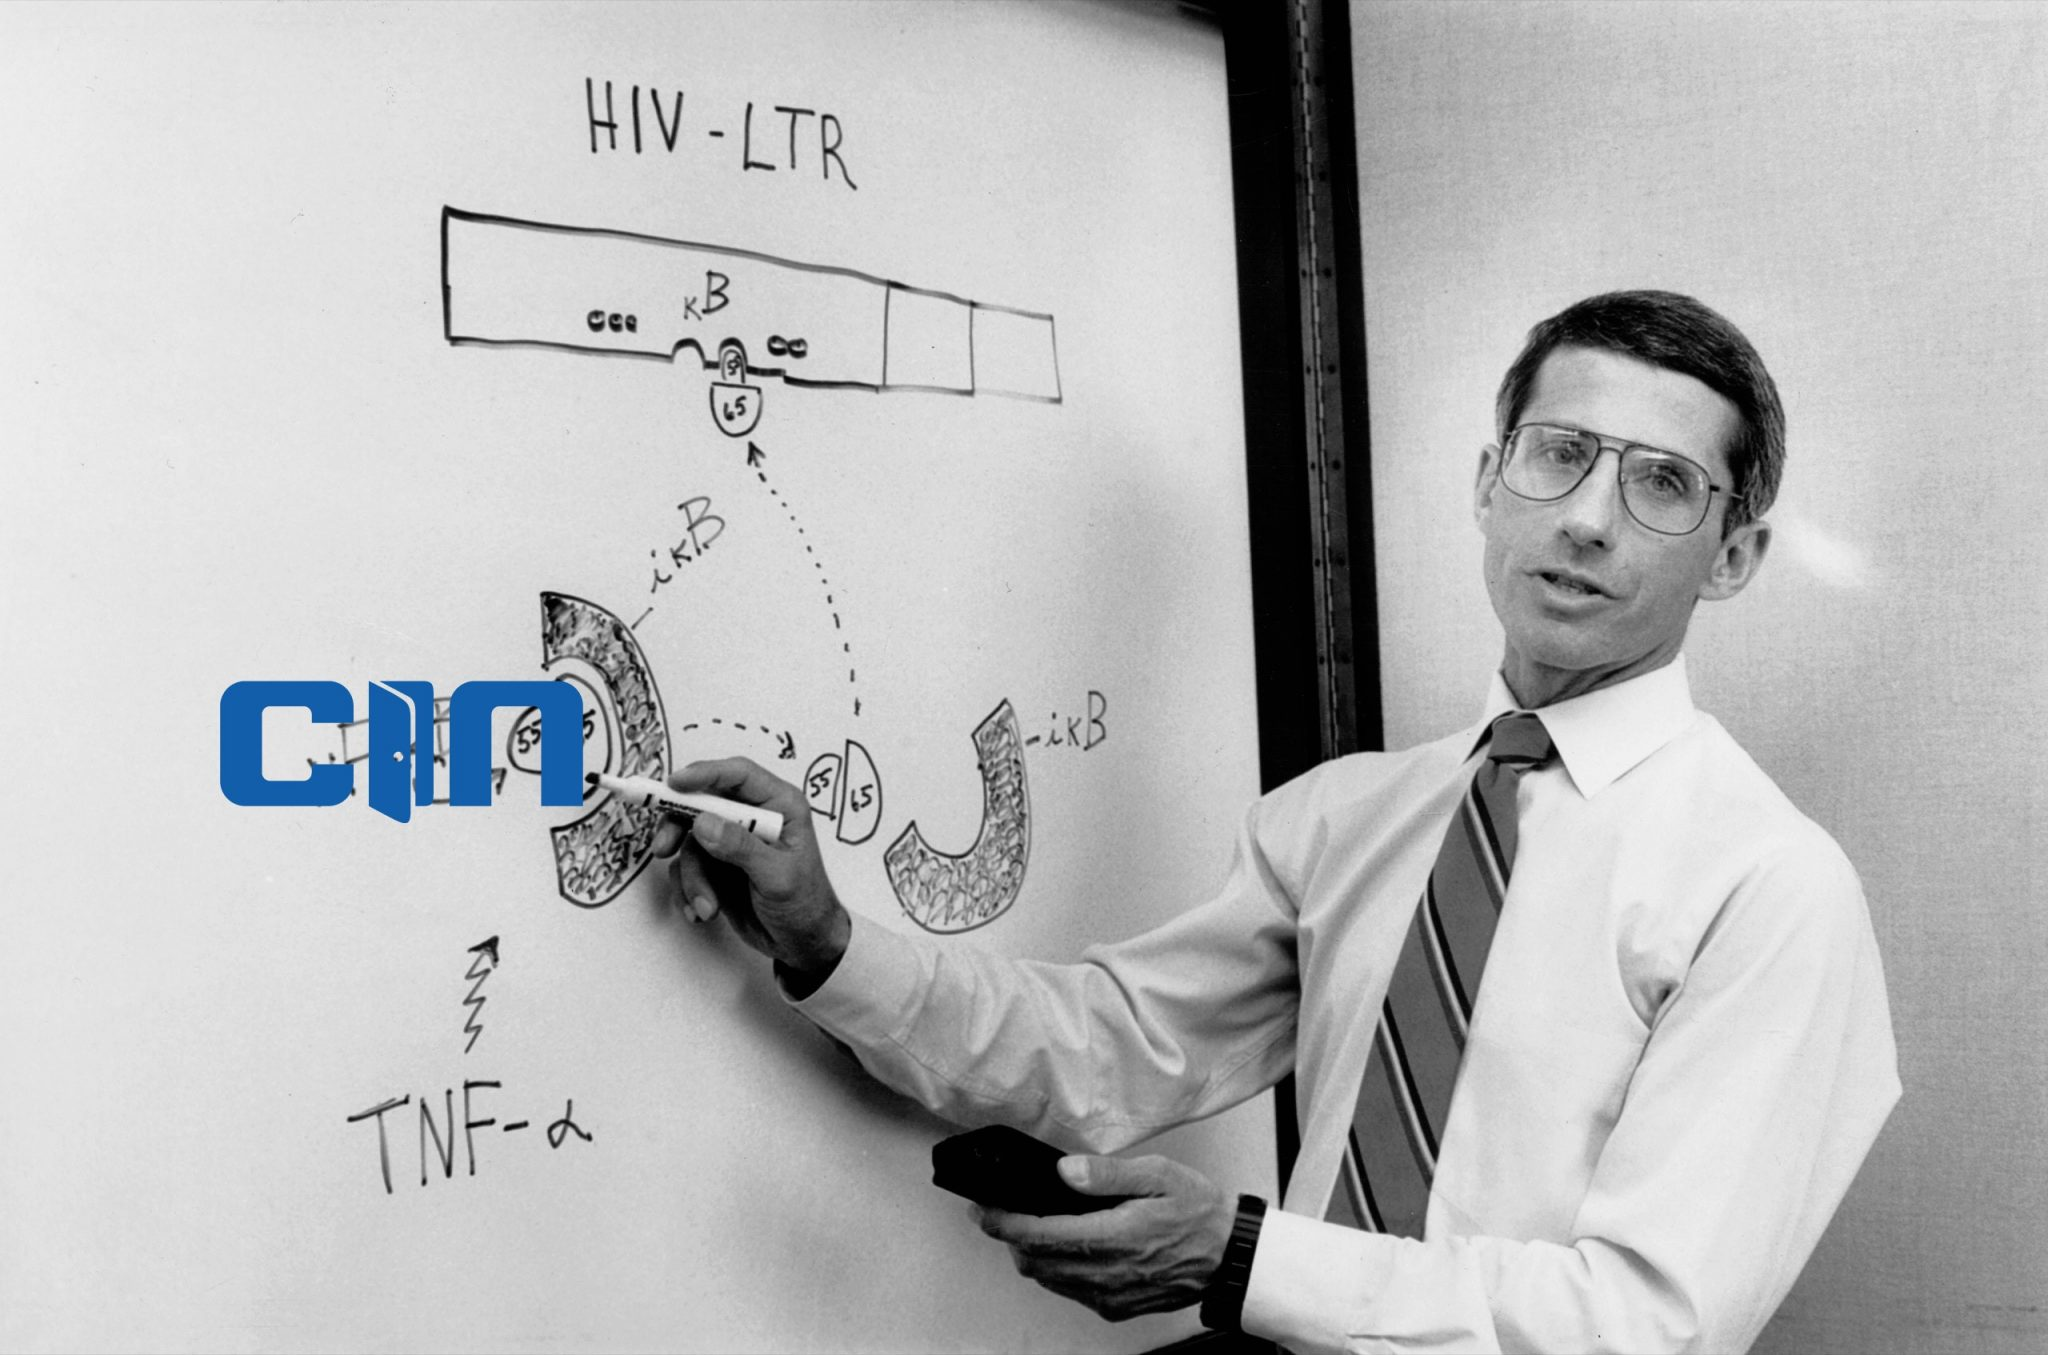 SARS-Cov-2 is HIV and Dr. Anthony Fauci Holds the Patents!